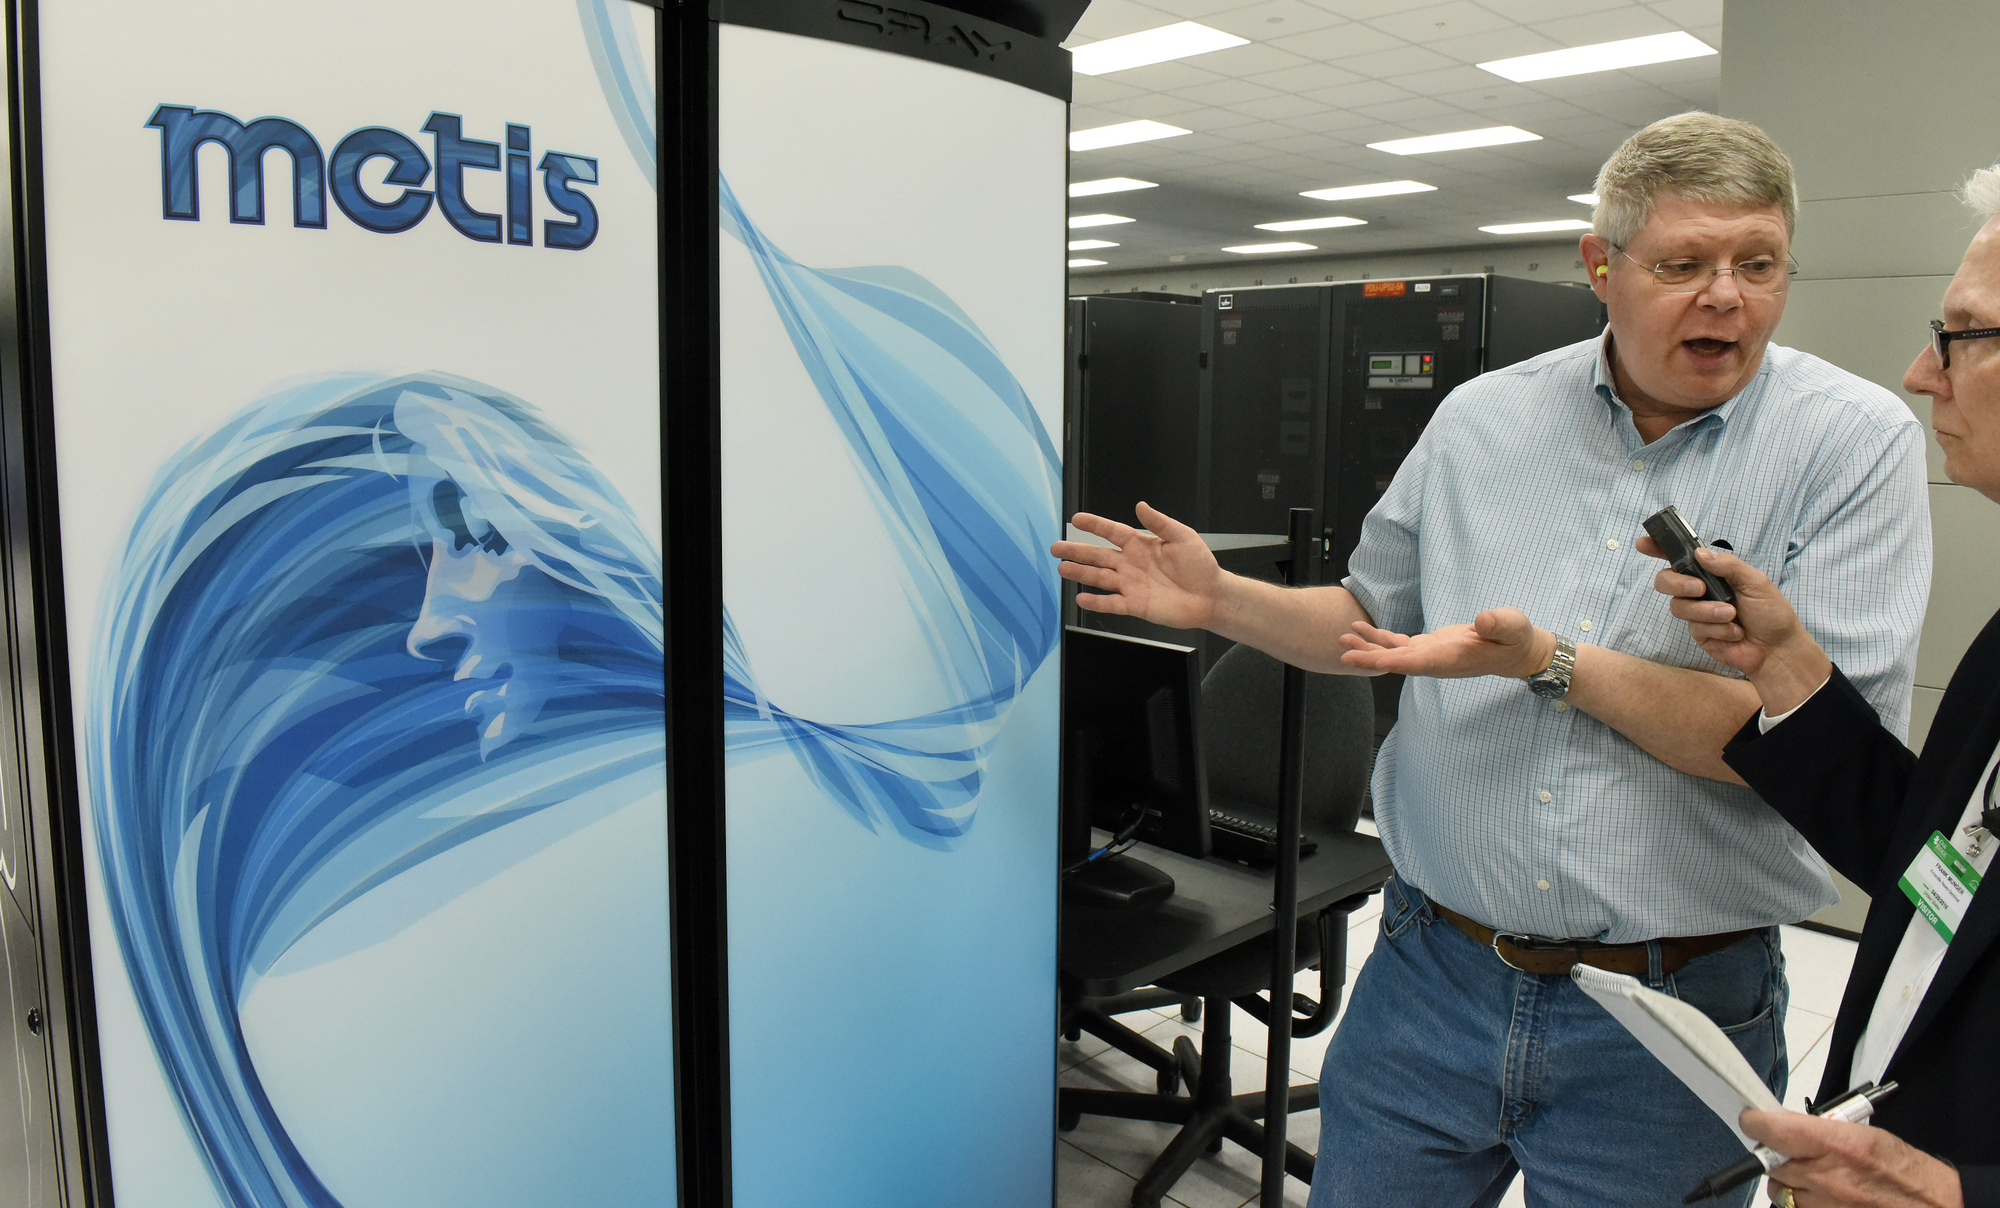 Buddy Bland, project director Summit Supercomputer Wednesday, April 20, 2016.  (MICHAEL PATRICK/NEWS SENTINEL)